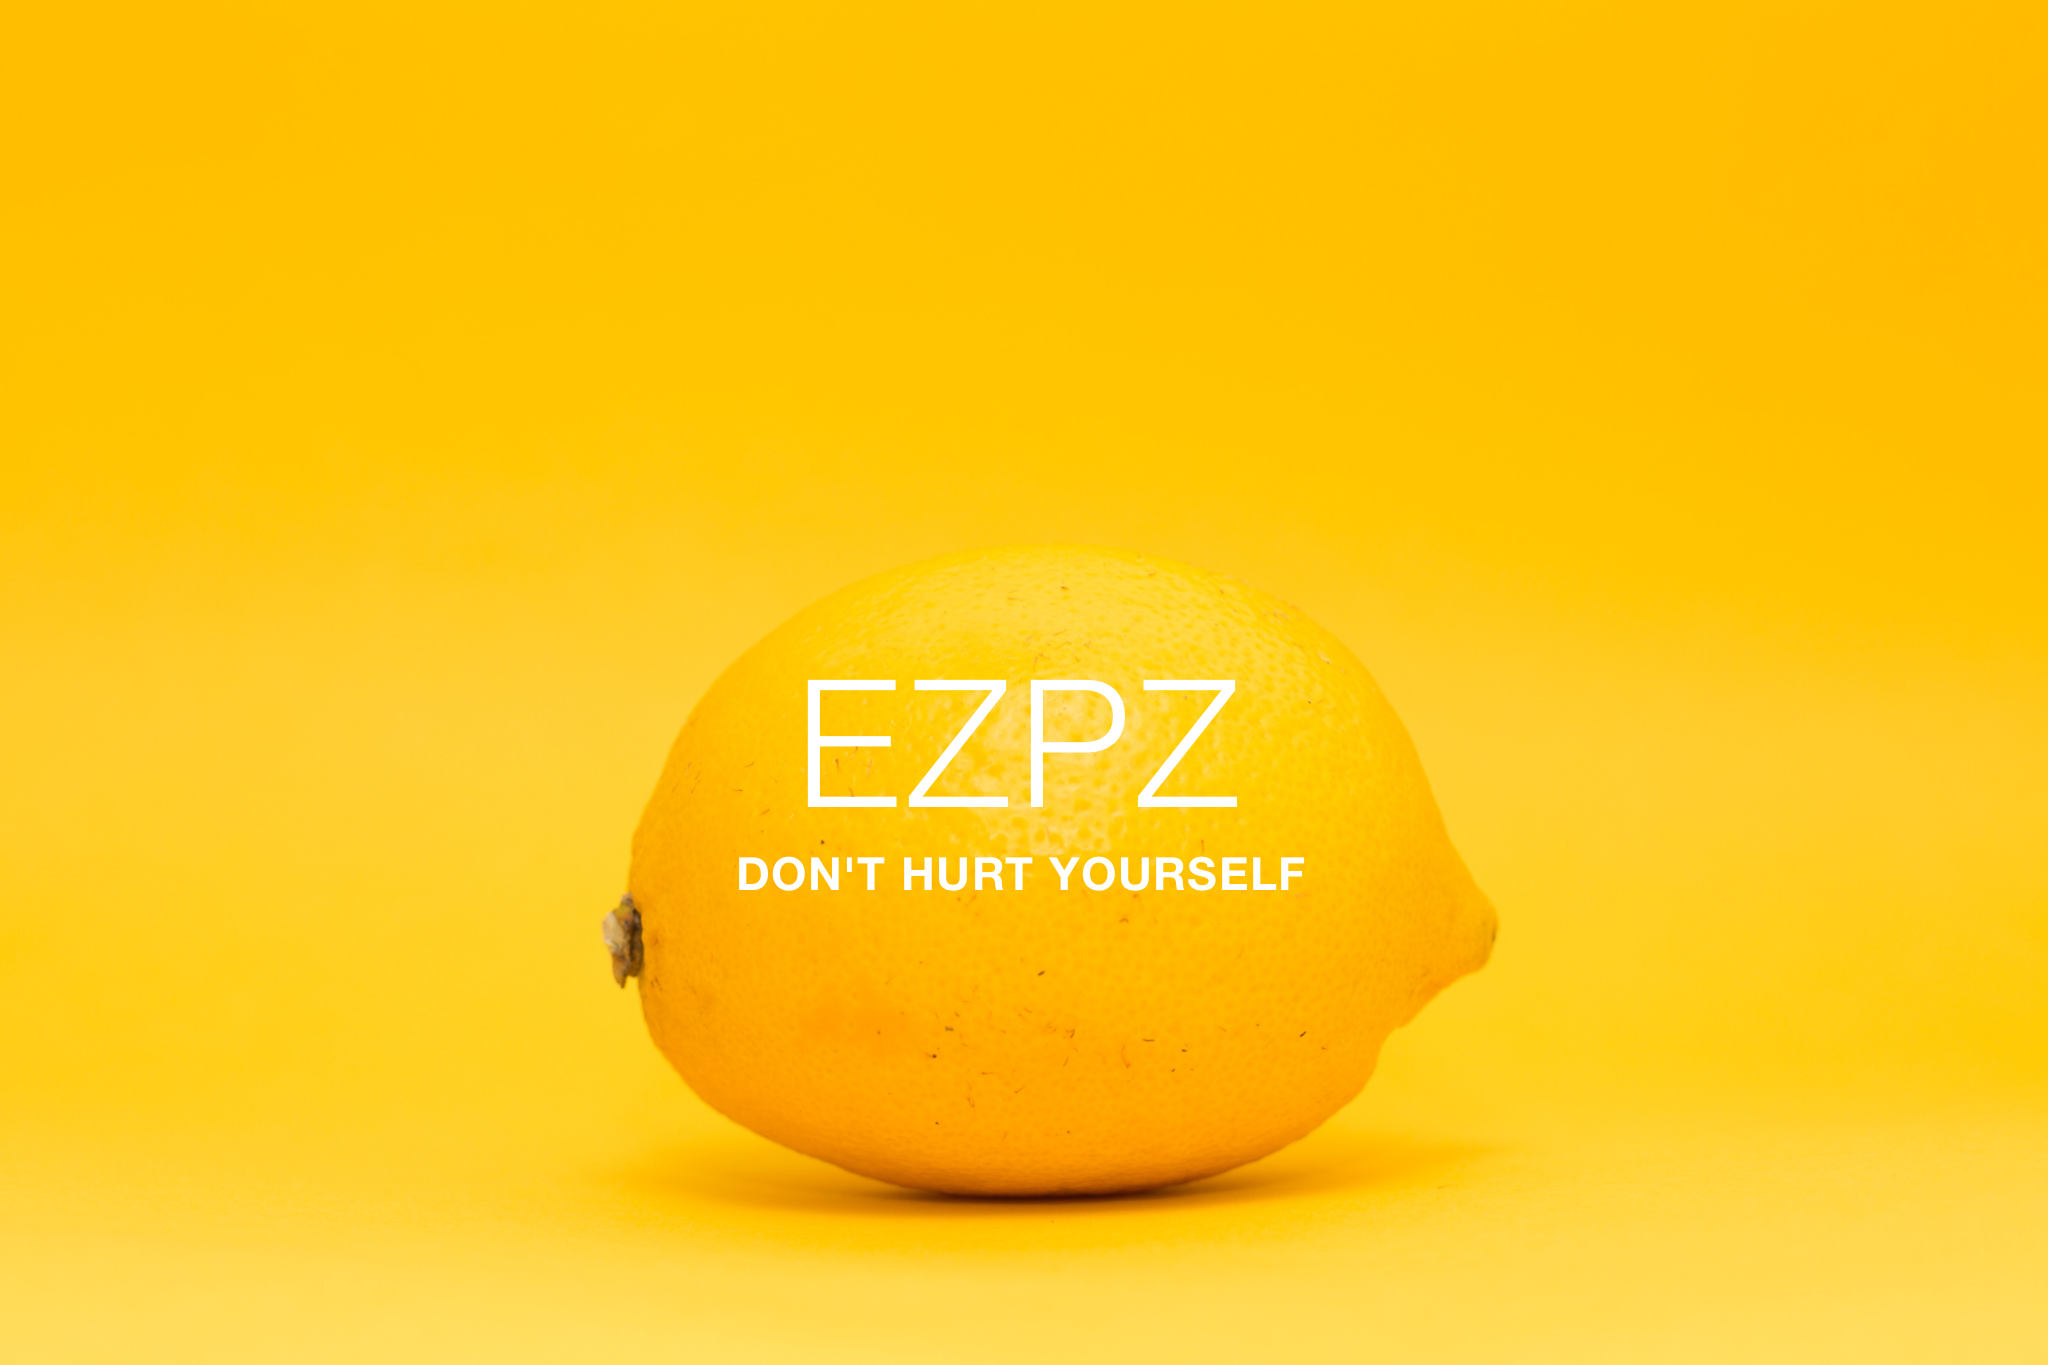 EZPZ lemon for Home page.PNG